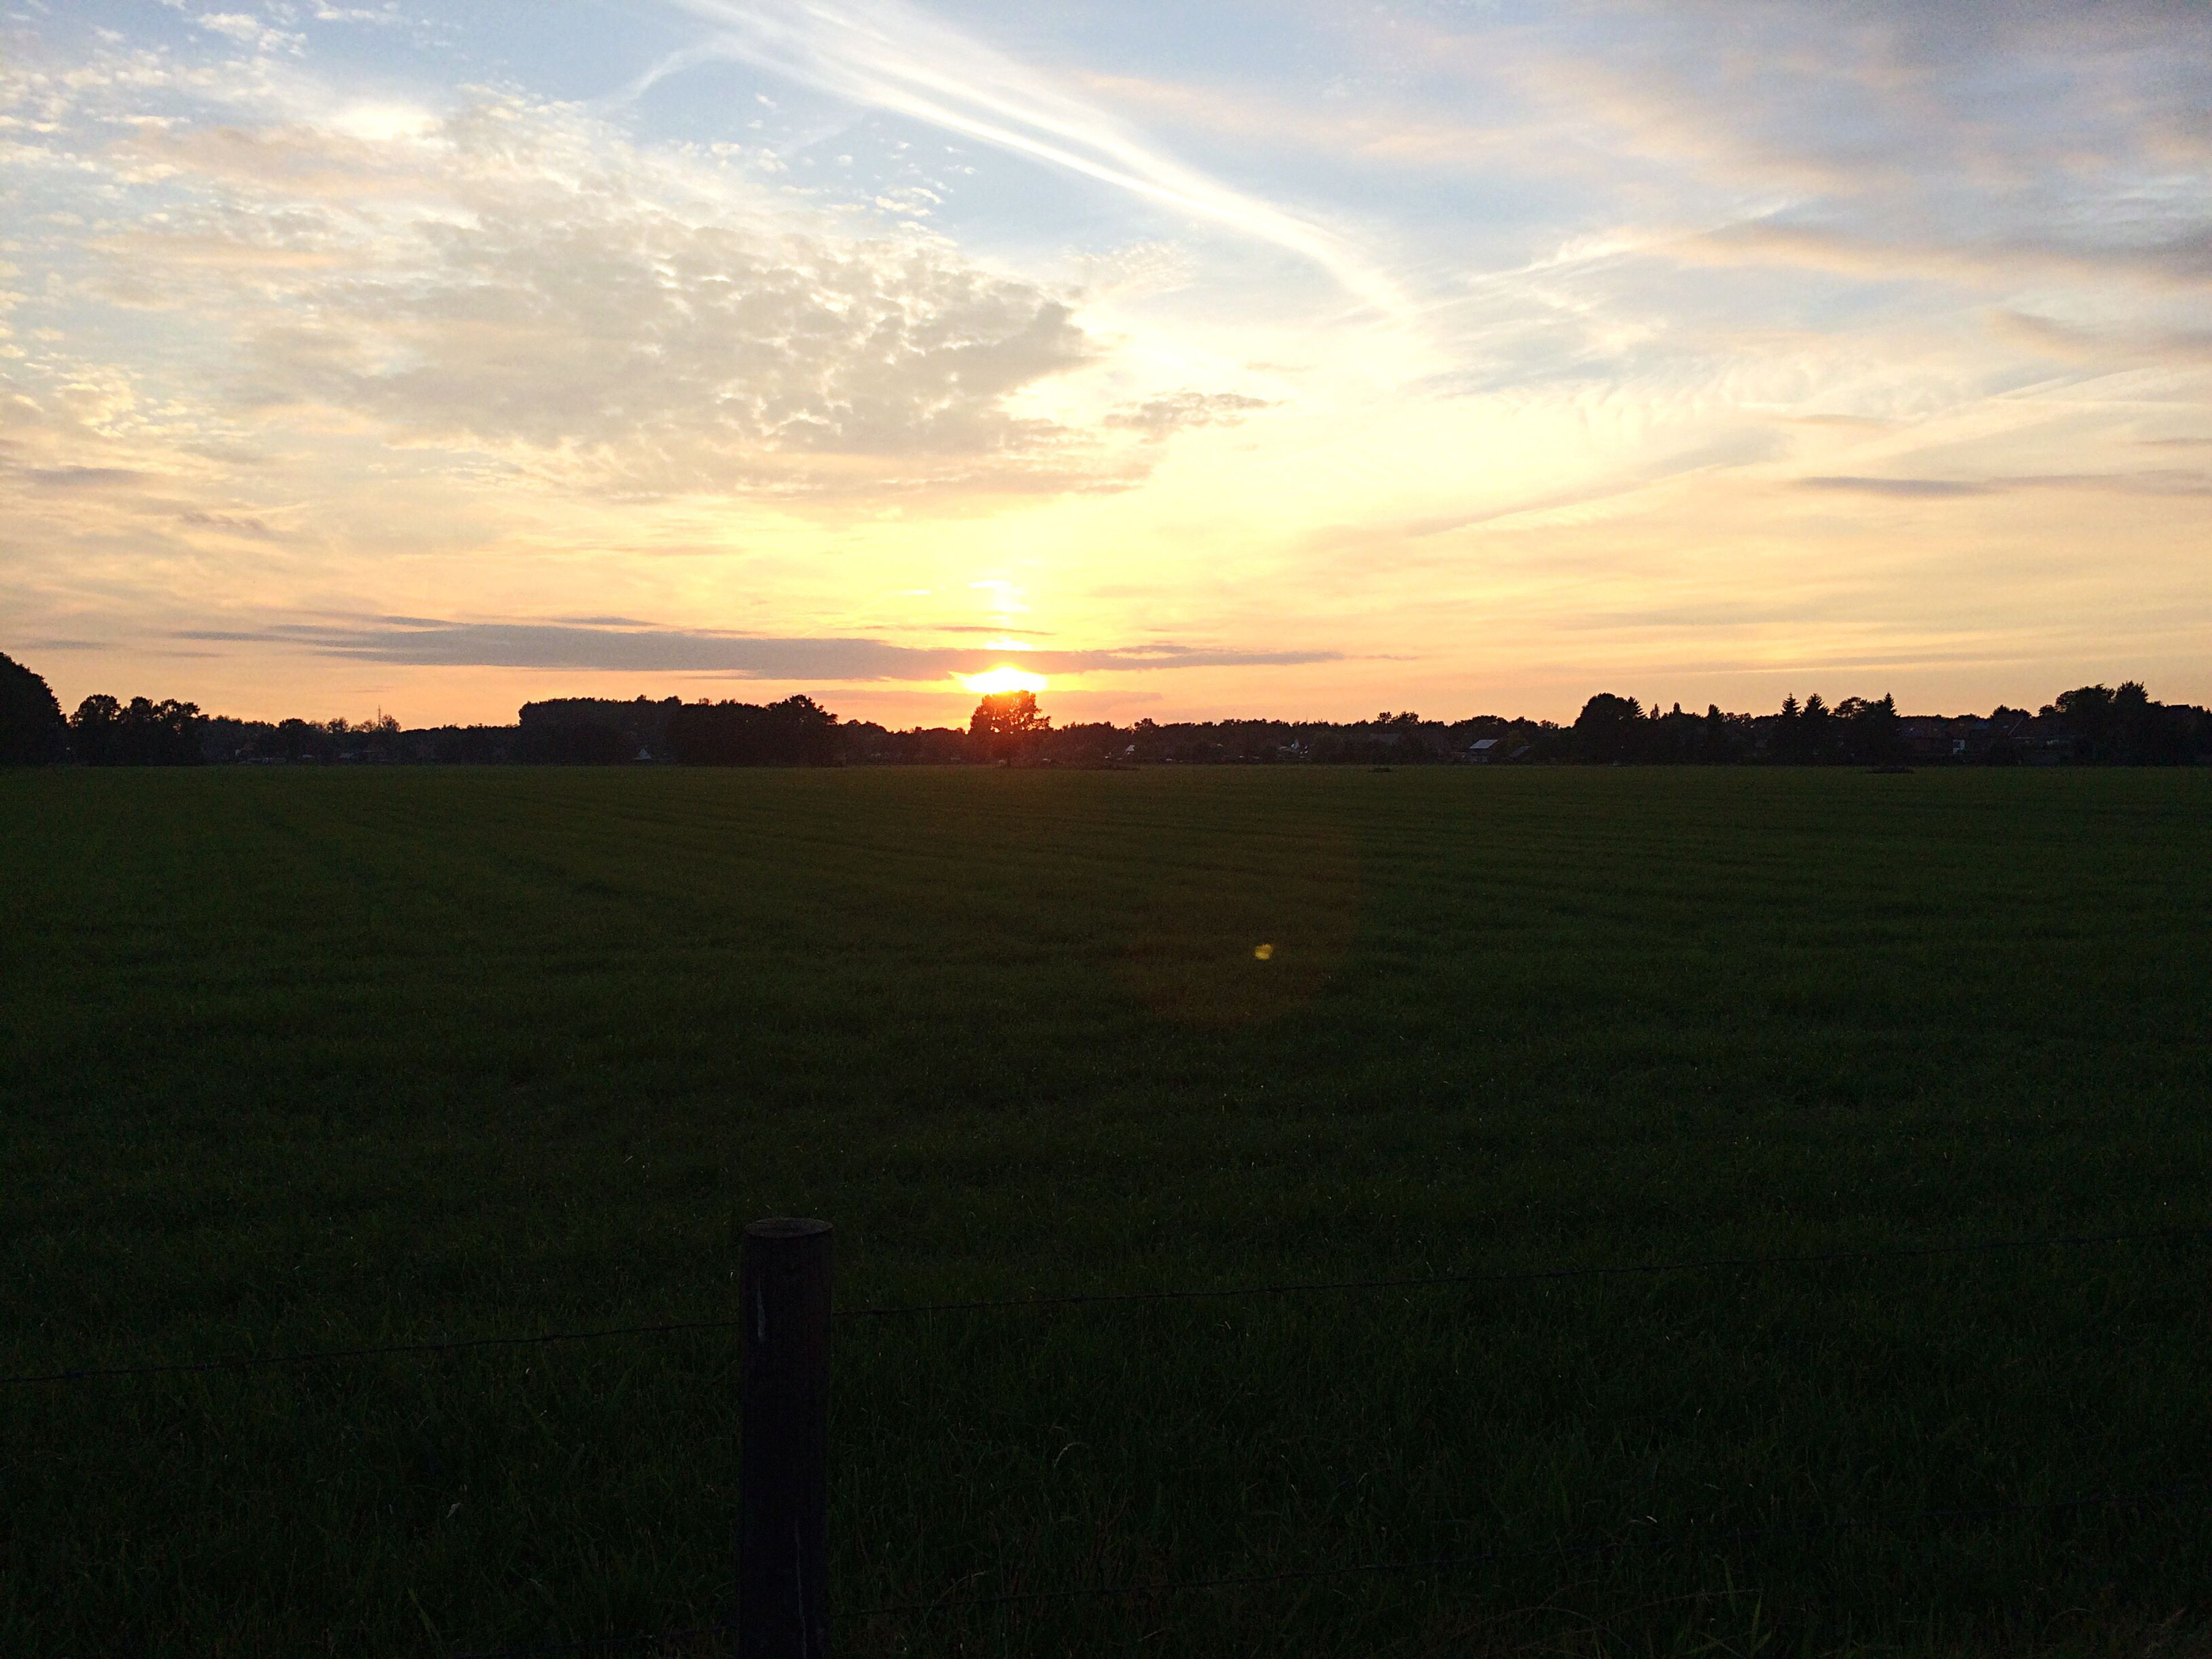 sunset, sky, sun, landscape, field, tranquil scene, scenics, tranquility, beauty in nature, cloud - sky, grass, nature, orange color, idyllic, sunlight, rural scene, cloud, no people, outdoors, sunbeam, horizon over land, grassy, cloudy, dramatic sky, remote, growth, non-urban scene, green color